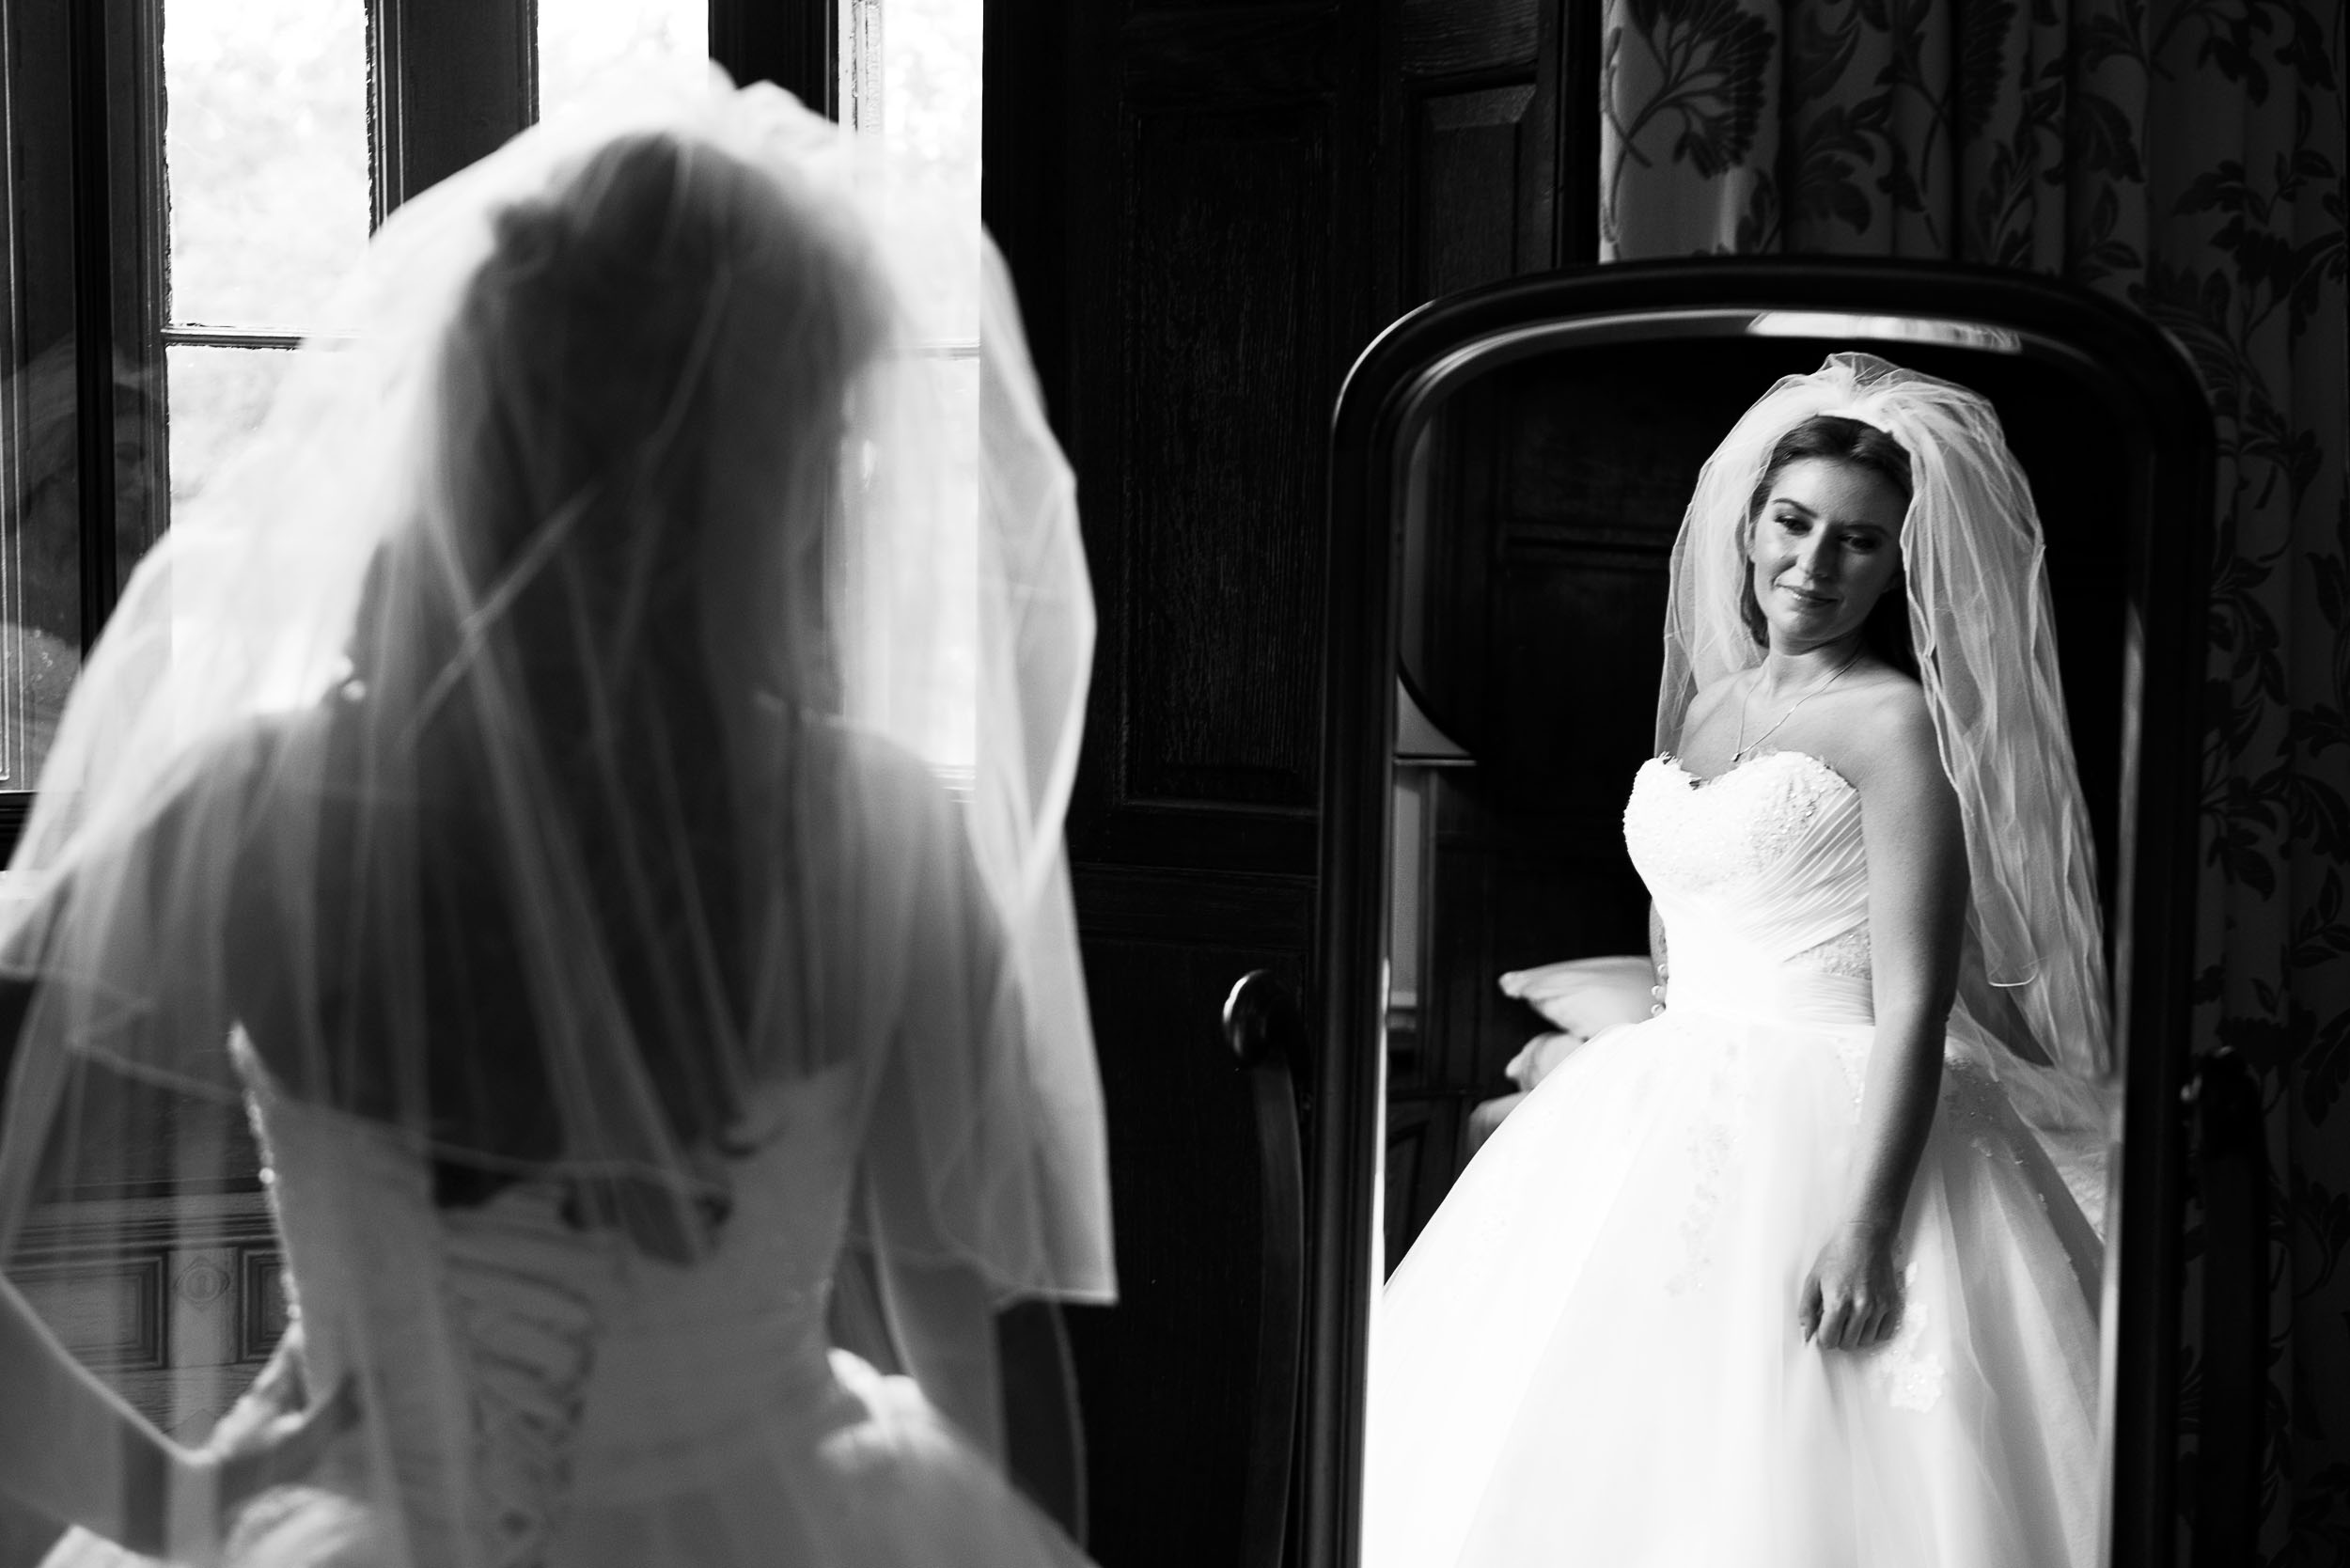 That mirror shot can capture an inner thought. But what is such a beautiful bride thinking?